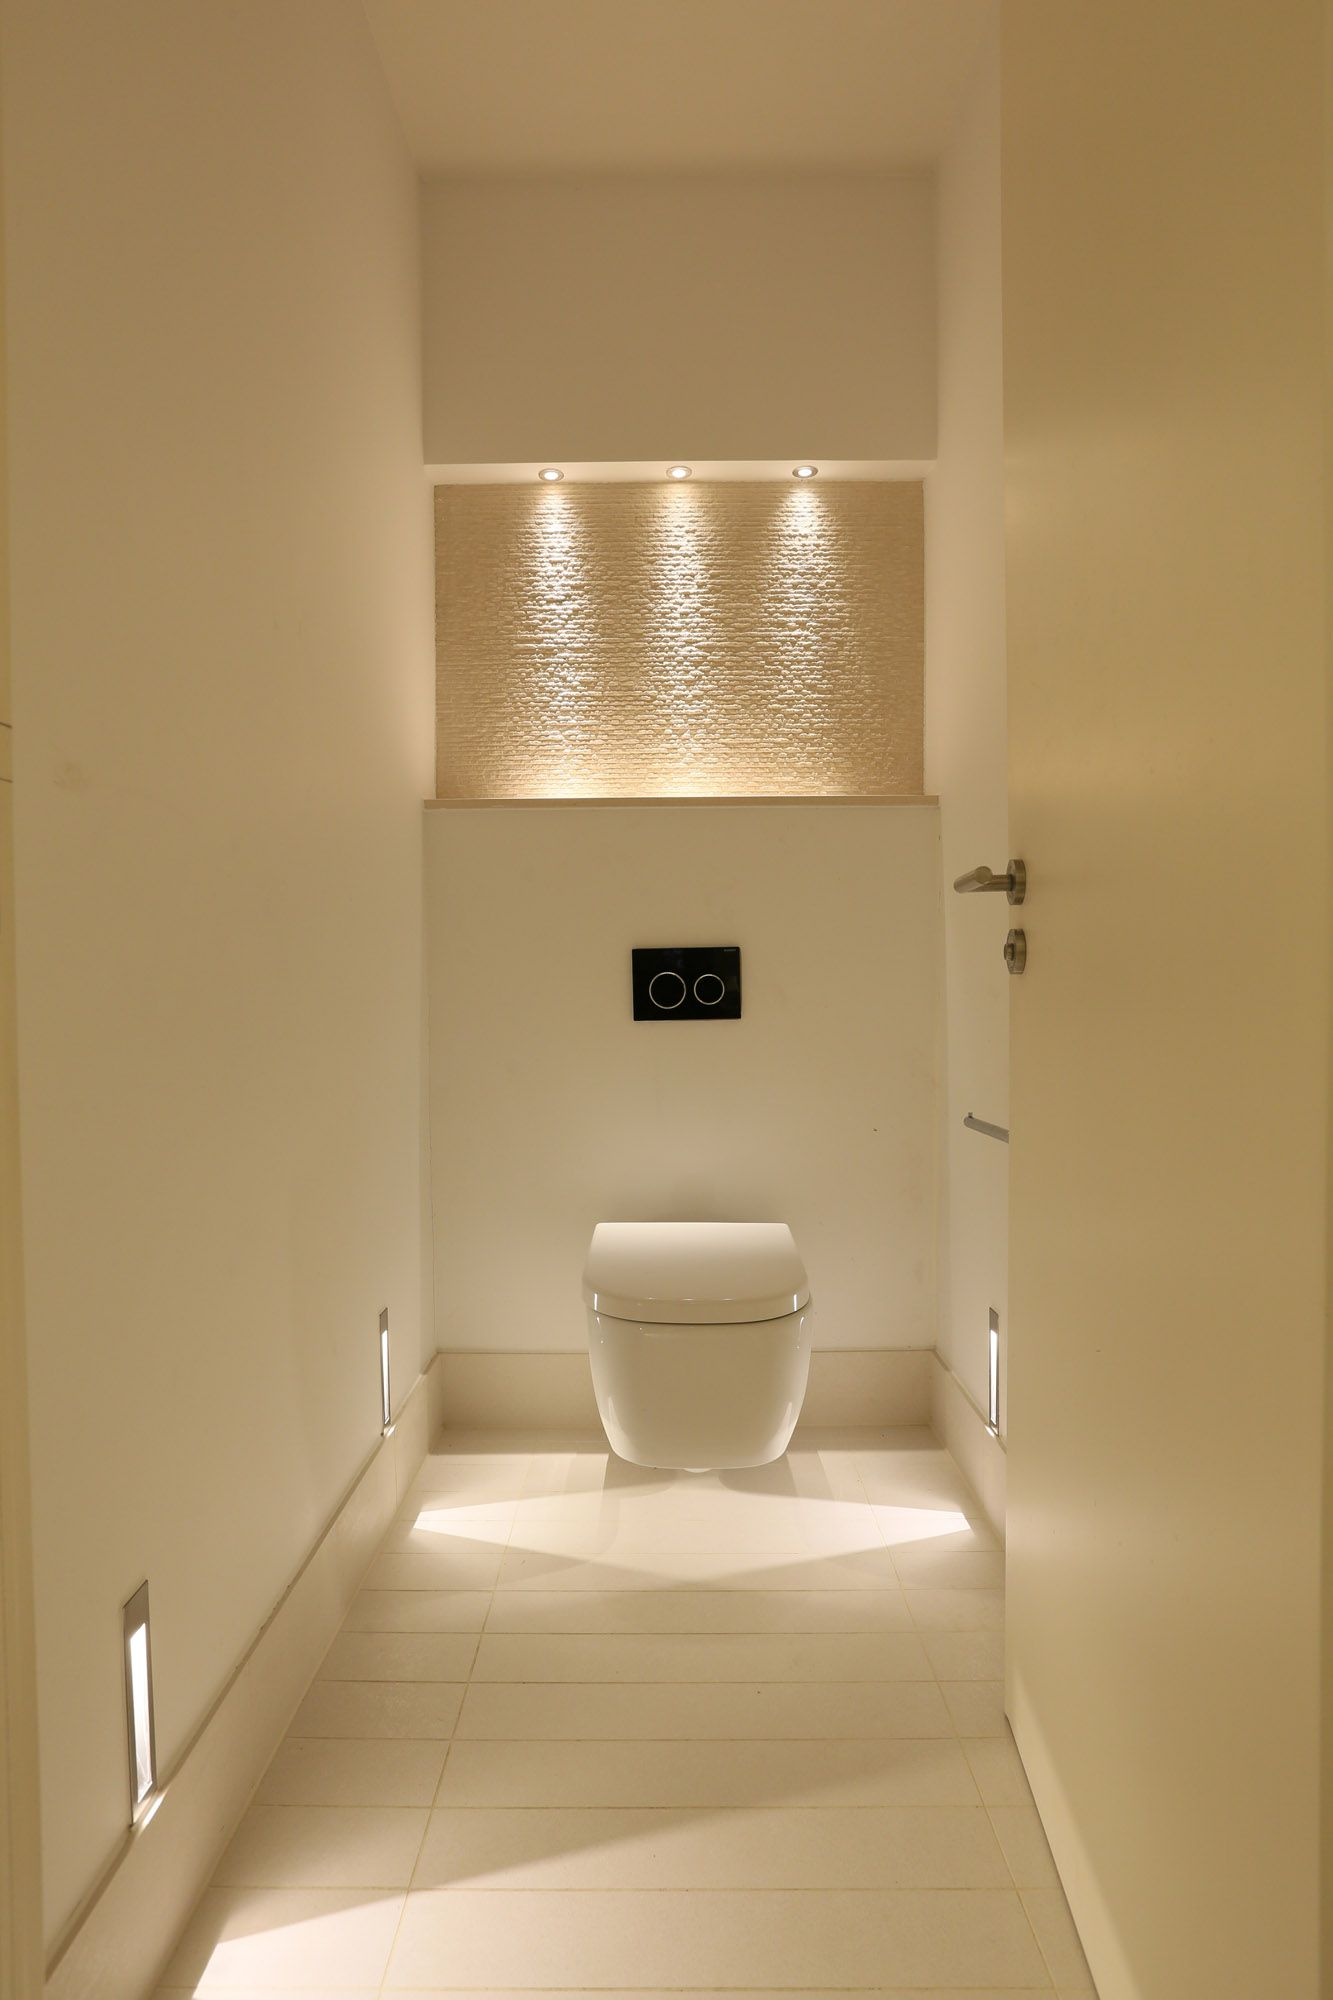 POWDER ROOM Bathroom Lighting Ideas (5)  Badkamerideeën